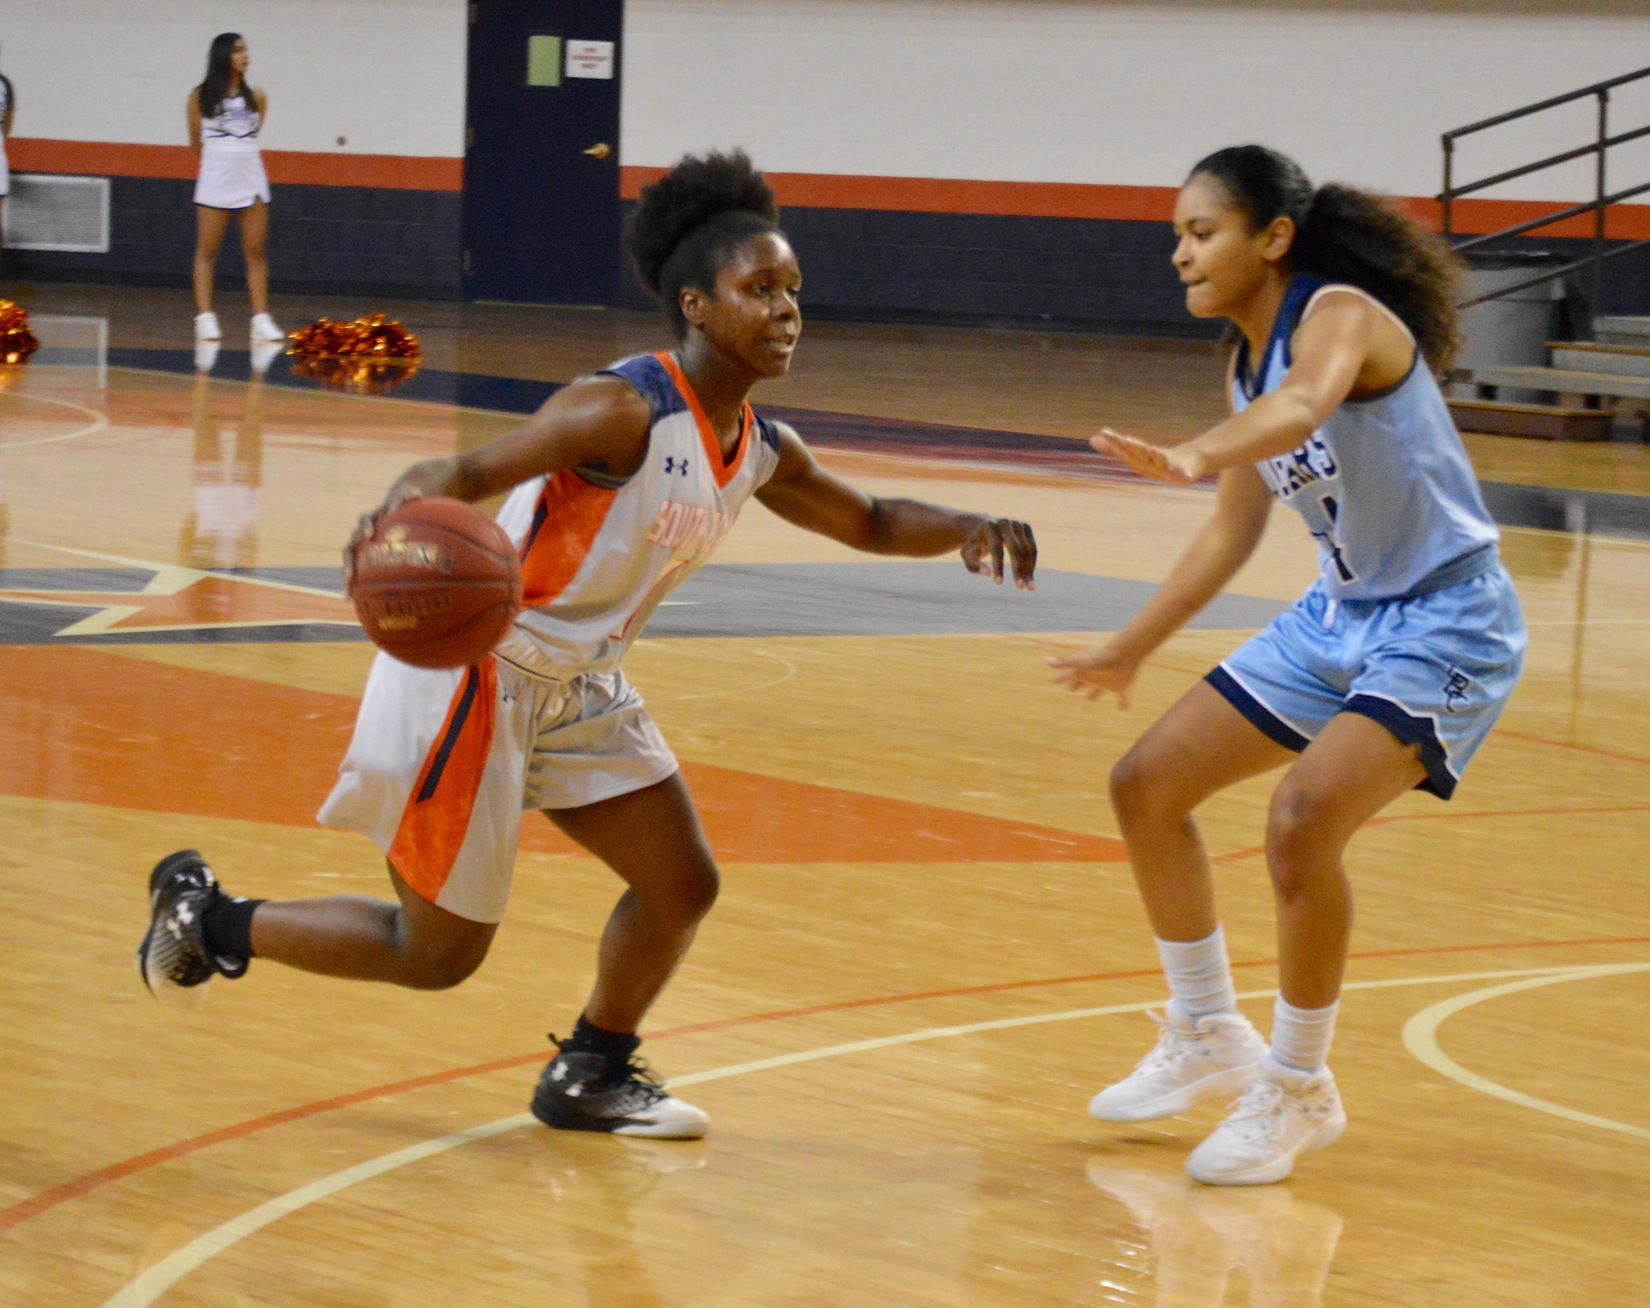 Lady Texans win third straight, down Coastal Bend 70-60 Wednesday night at the Texan Dome